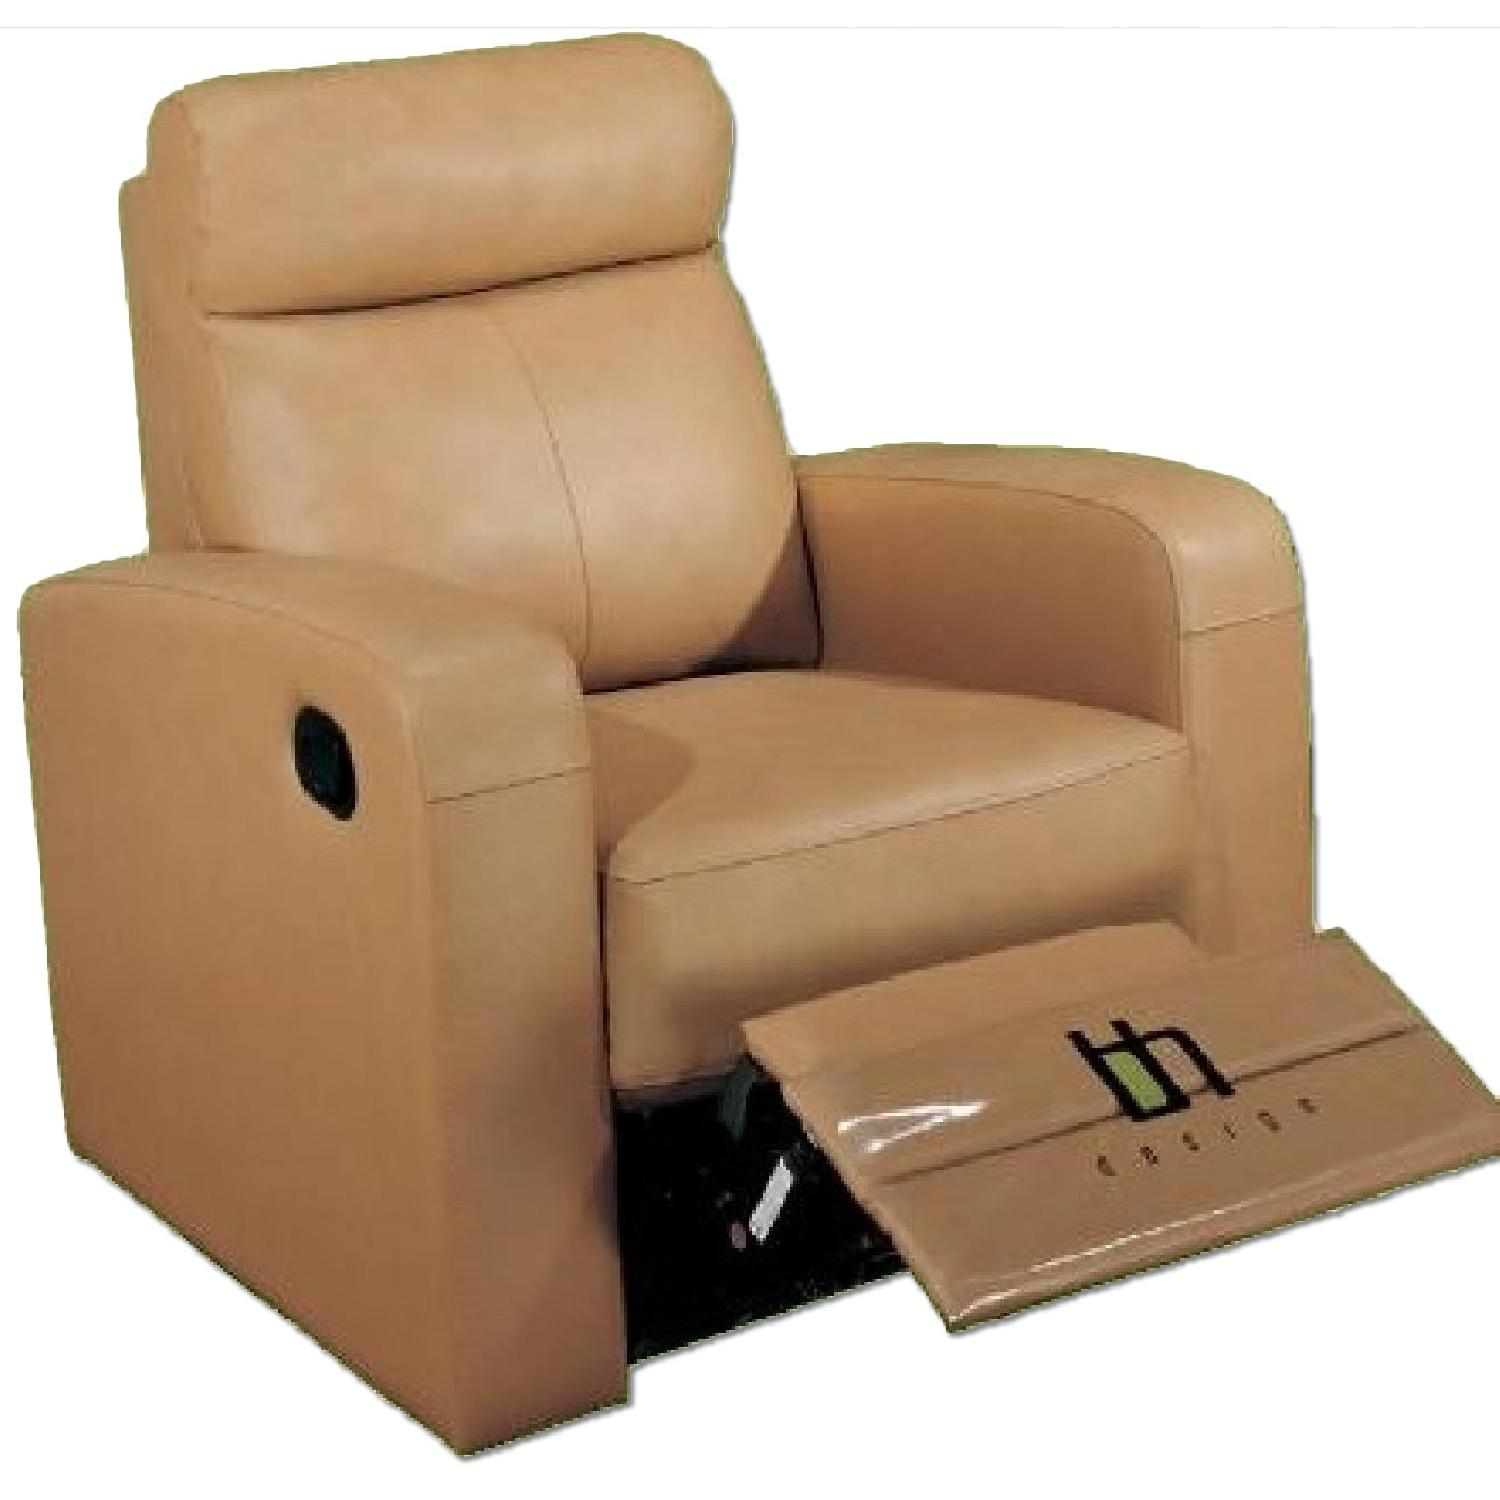 Apartment Size Recliner Chair In Taupe Color Top Grain